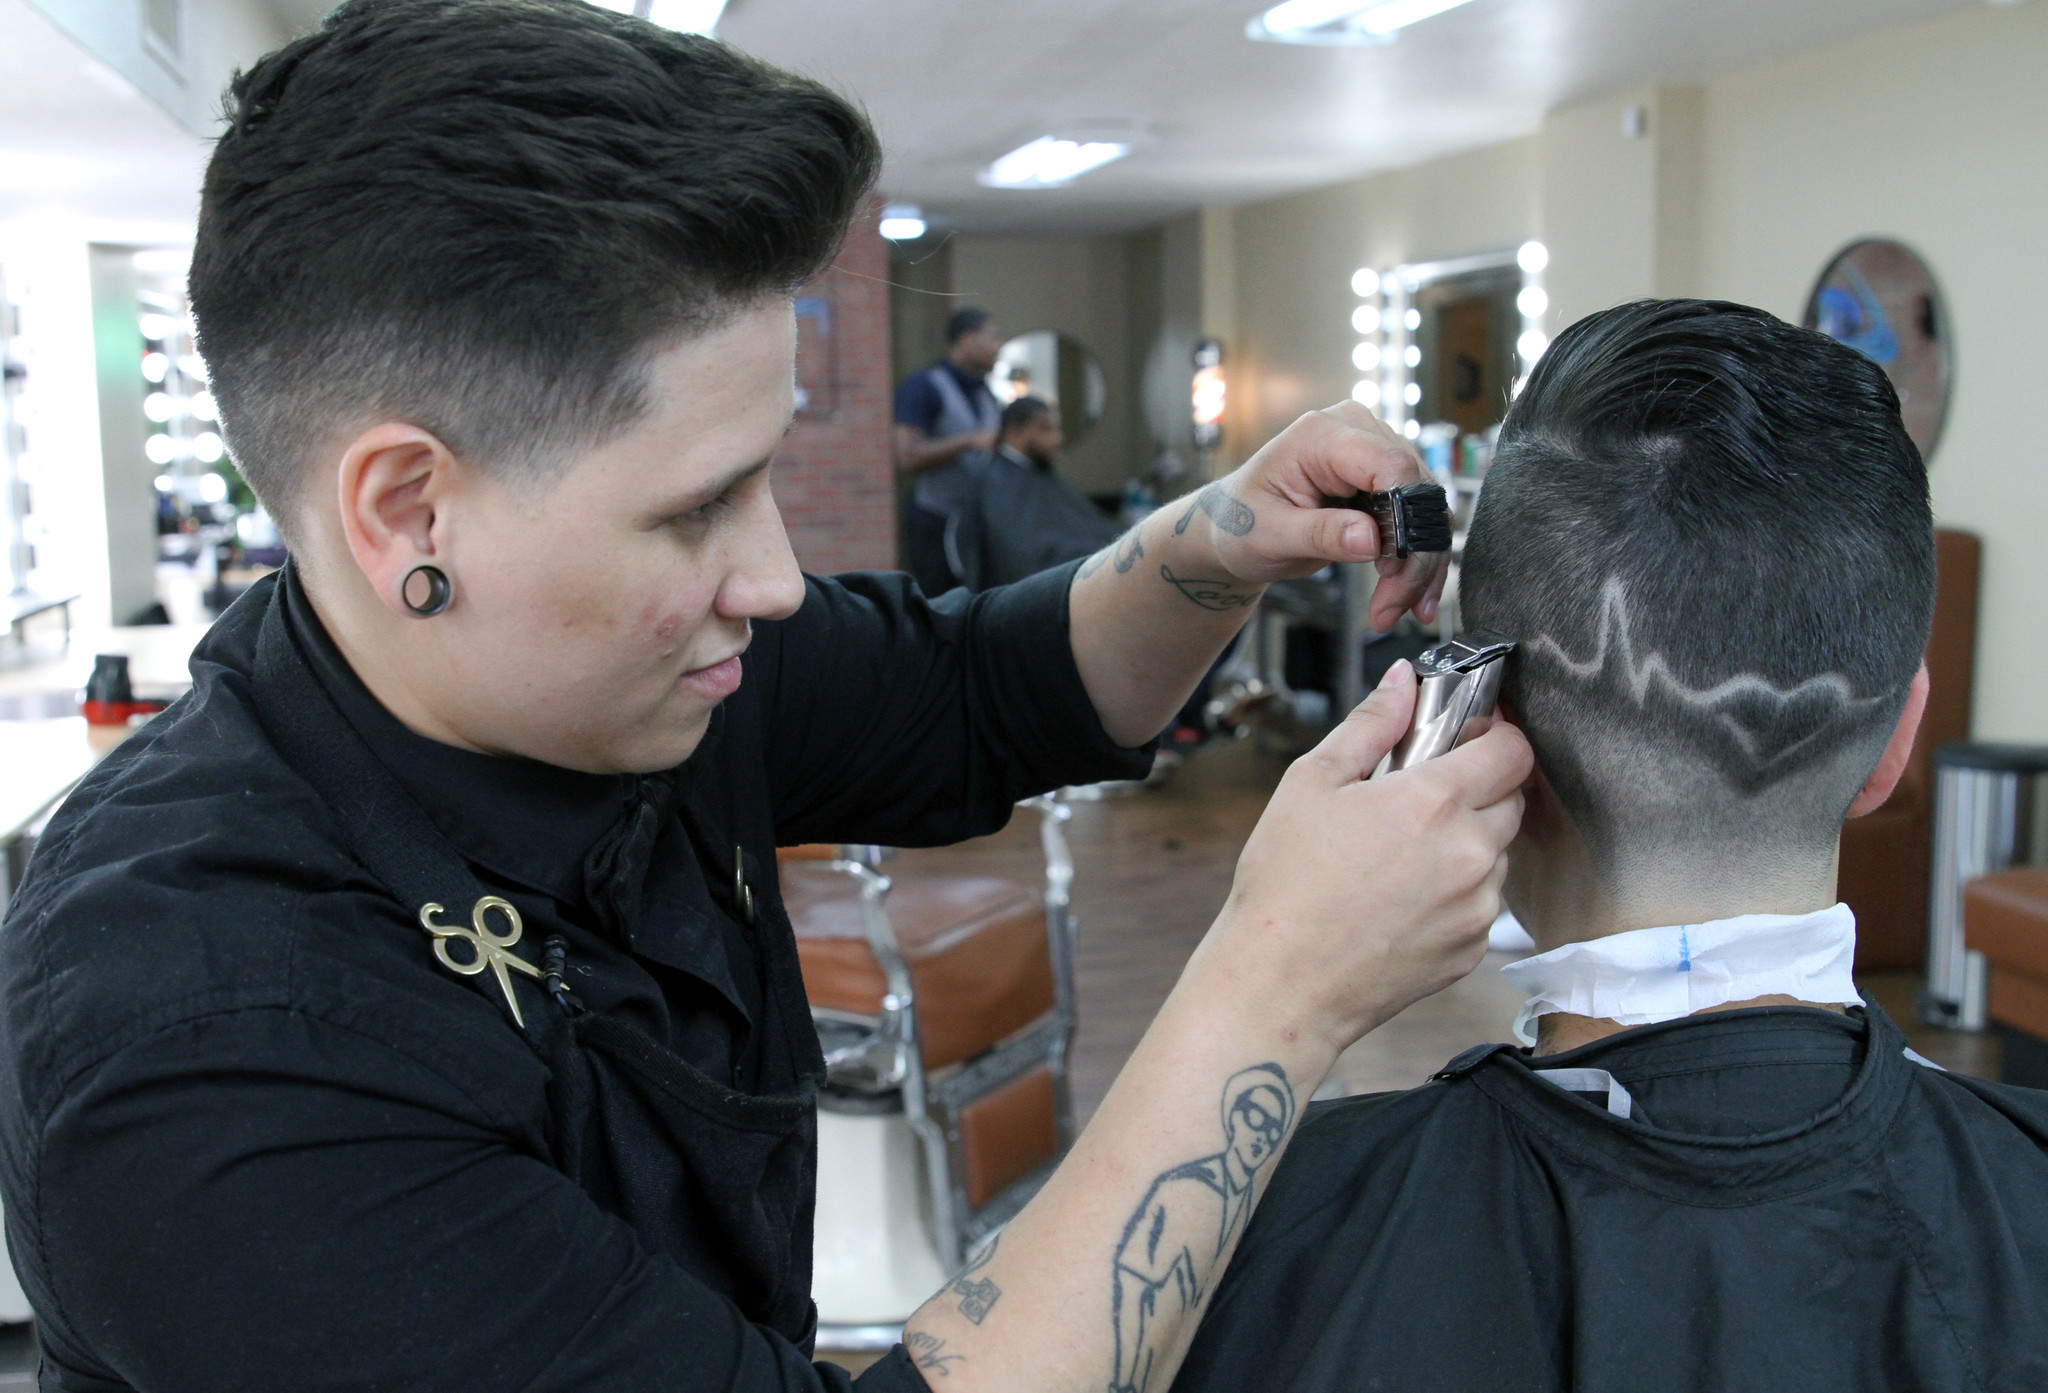 Barbershop honors victims of Pulse tragedy with special haircuts - Orlando Sentinel